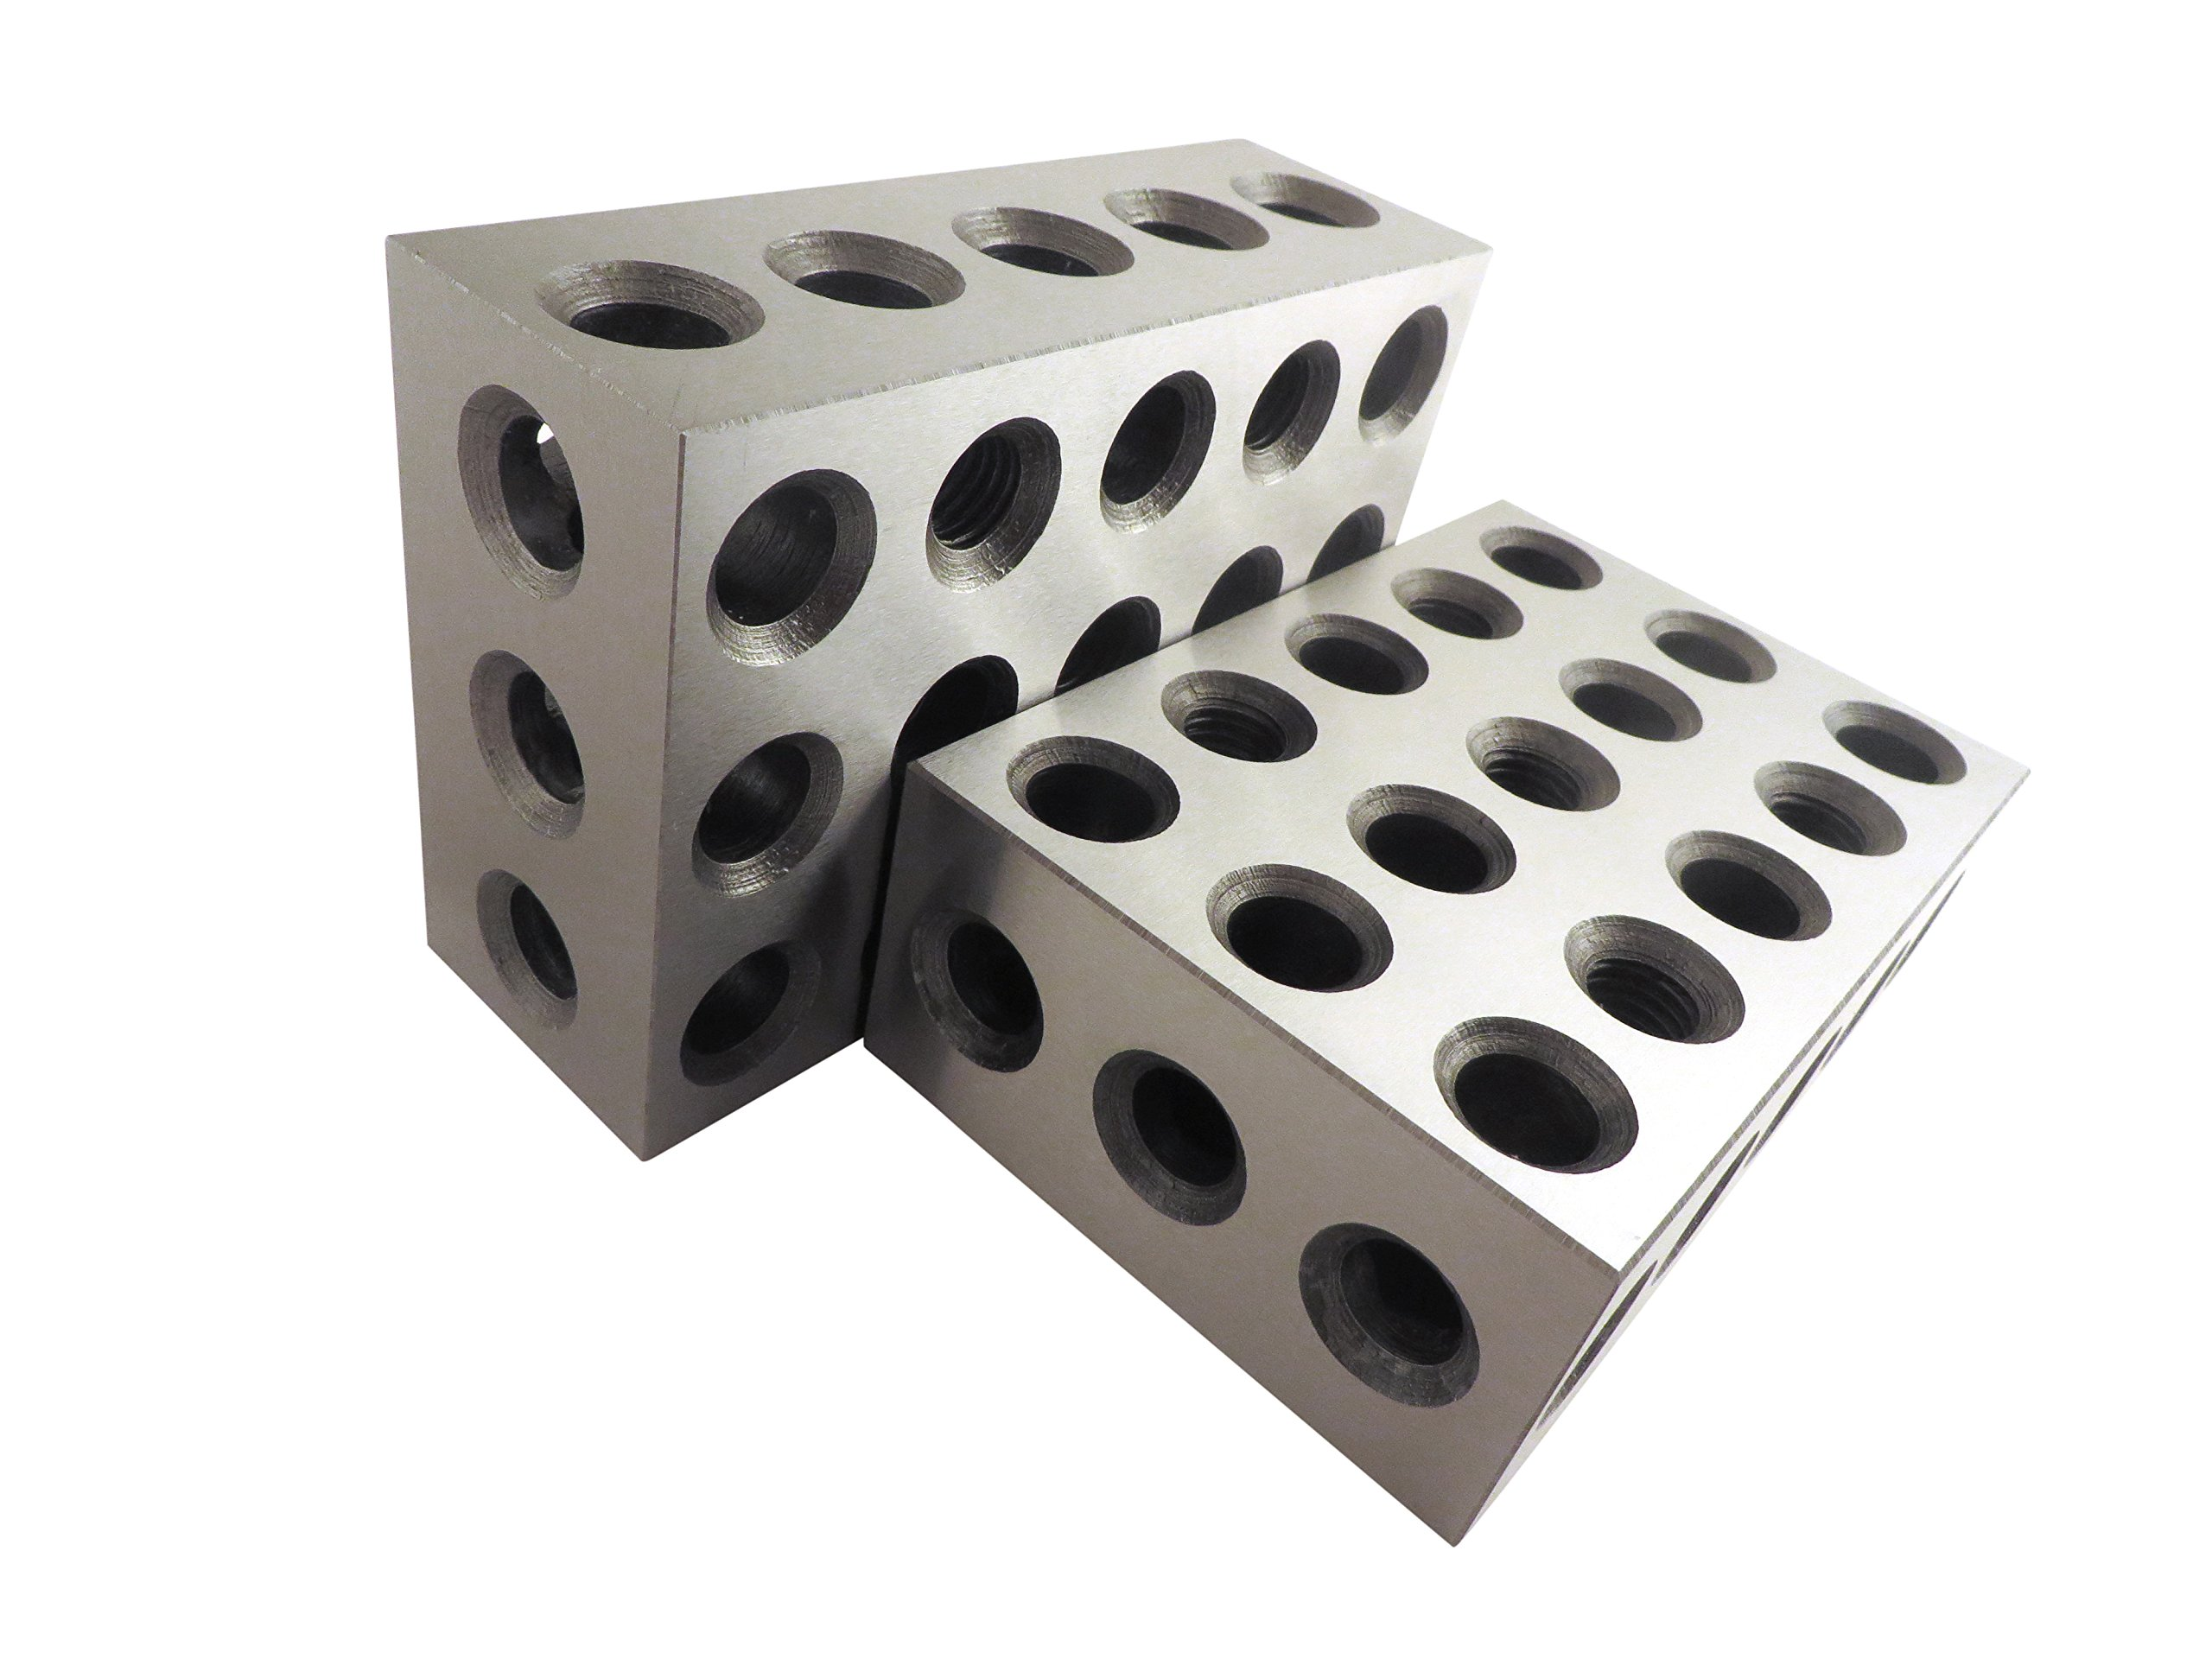 2-4-6 Blocks Matched Pair (2 Each), Hardened Steel RC 55-62, 23 Holes (2''x4''x6'') 246 Precision Ground Machinist Set Up Blocks TTW246